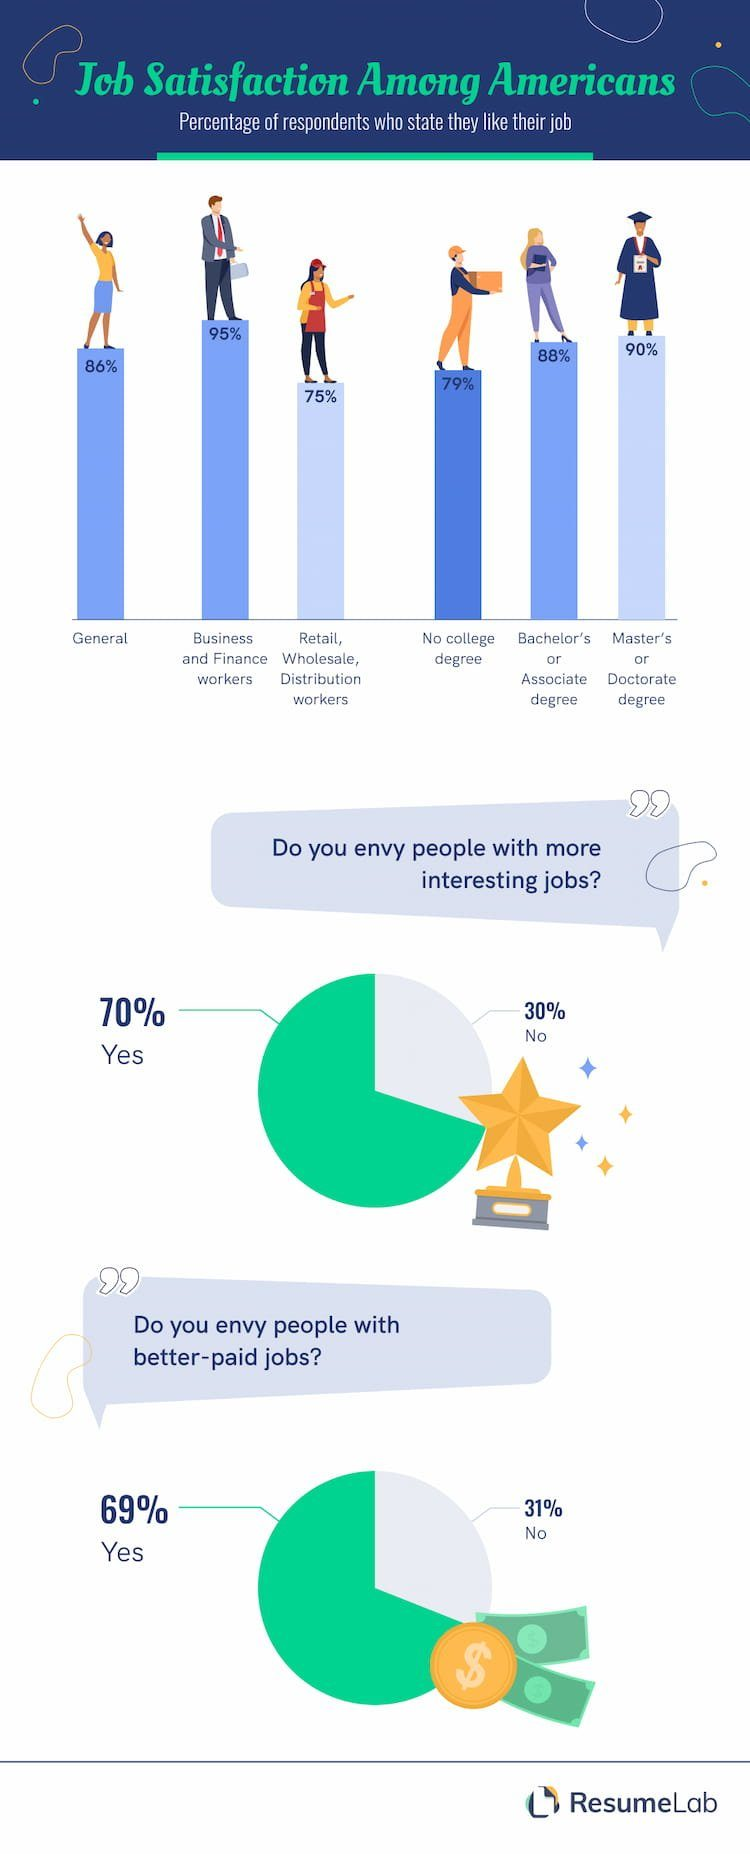 Infographic by ResumeLab showing level of job satisfaction among American workers.